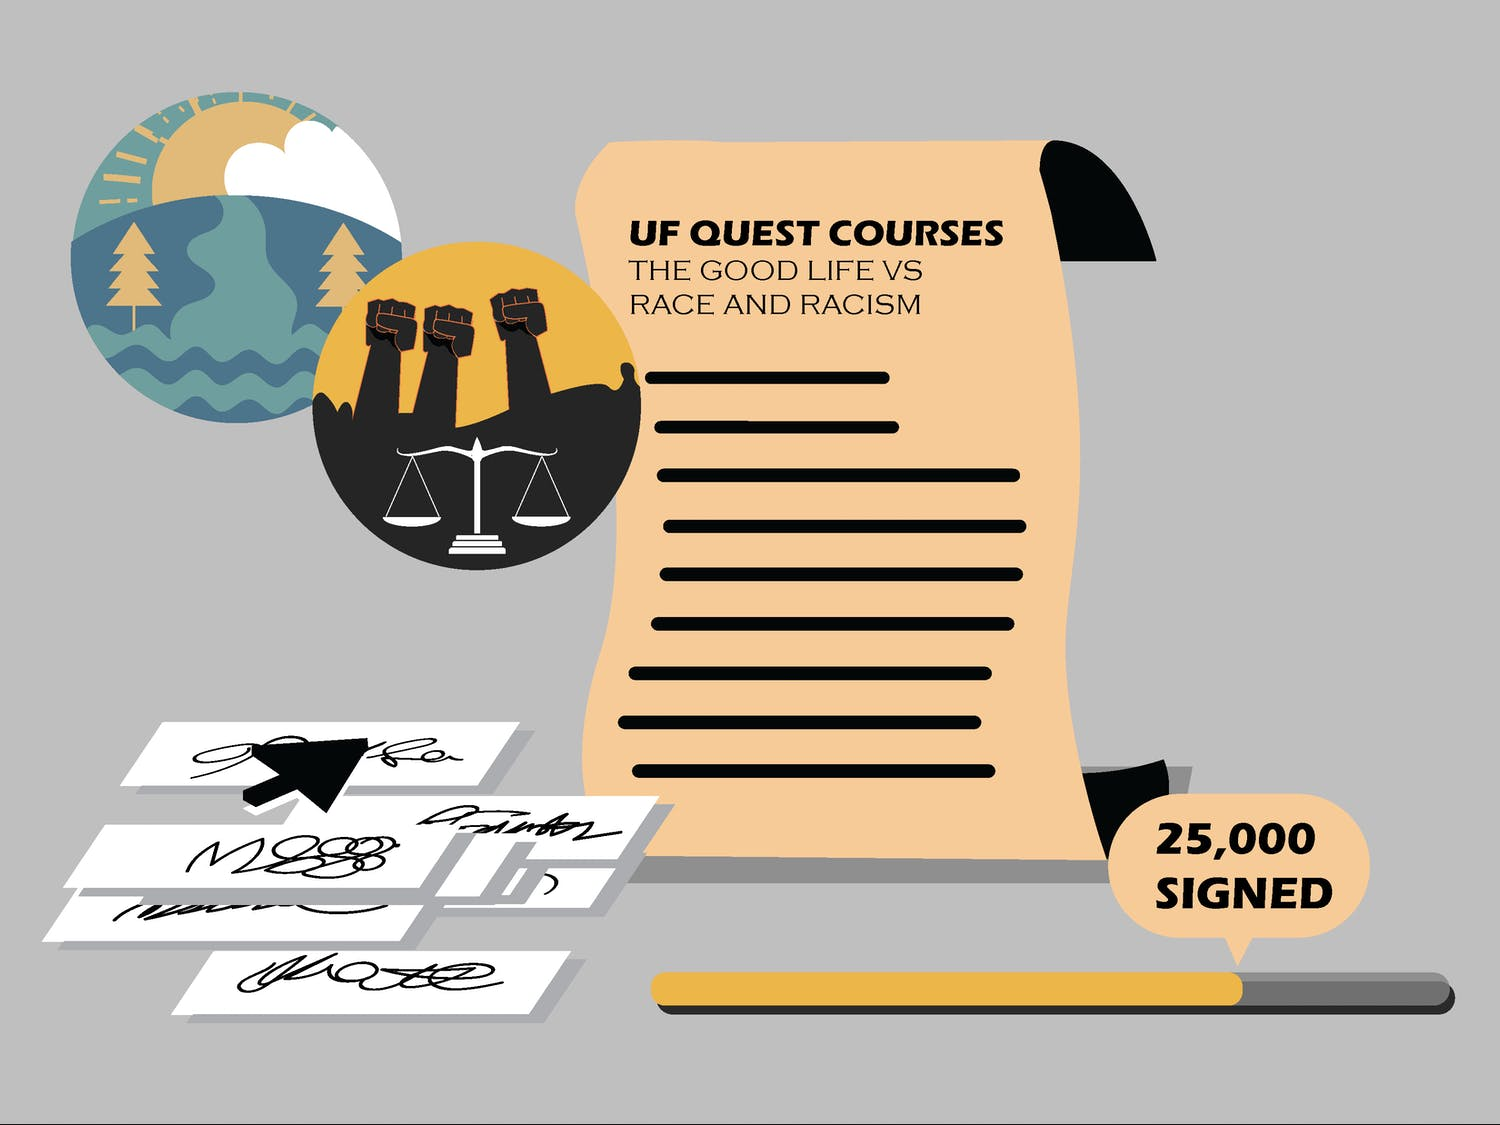 UF's required course: Race and Racism or Good Life?